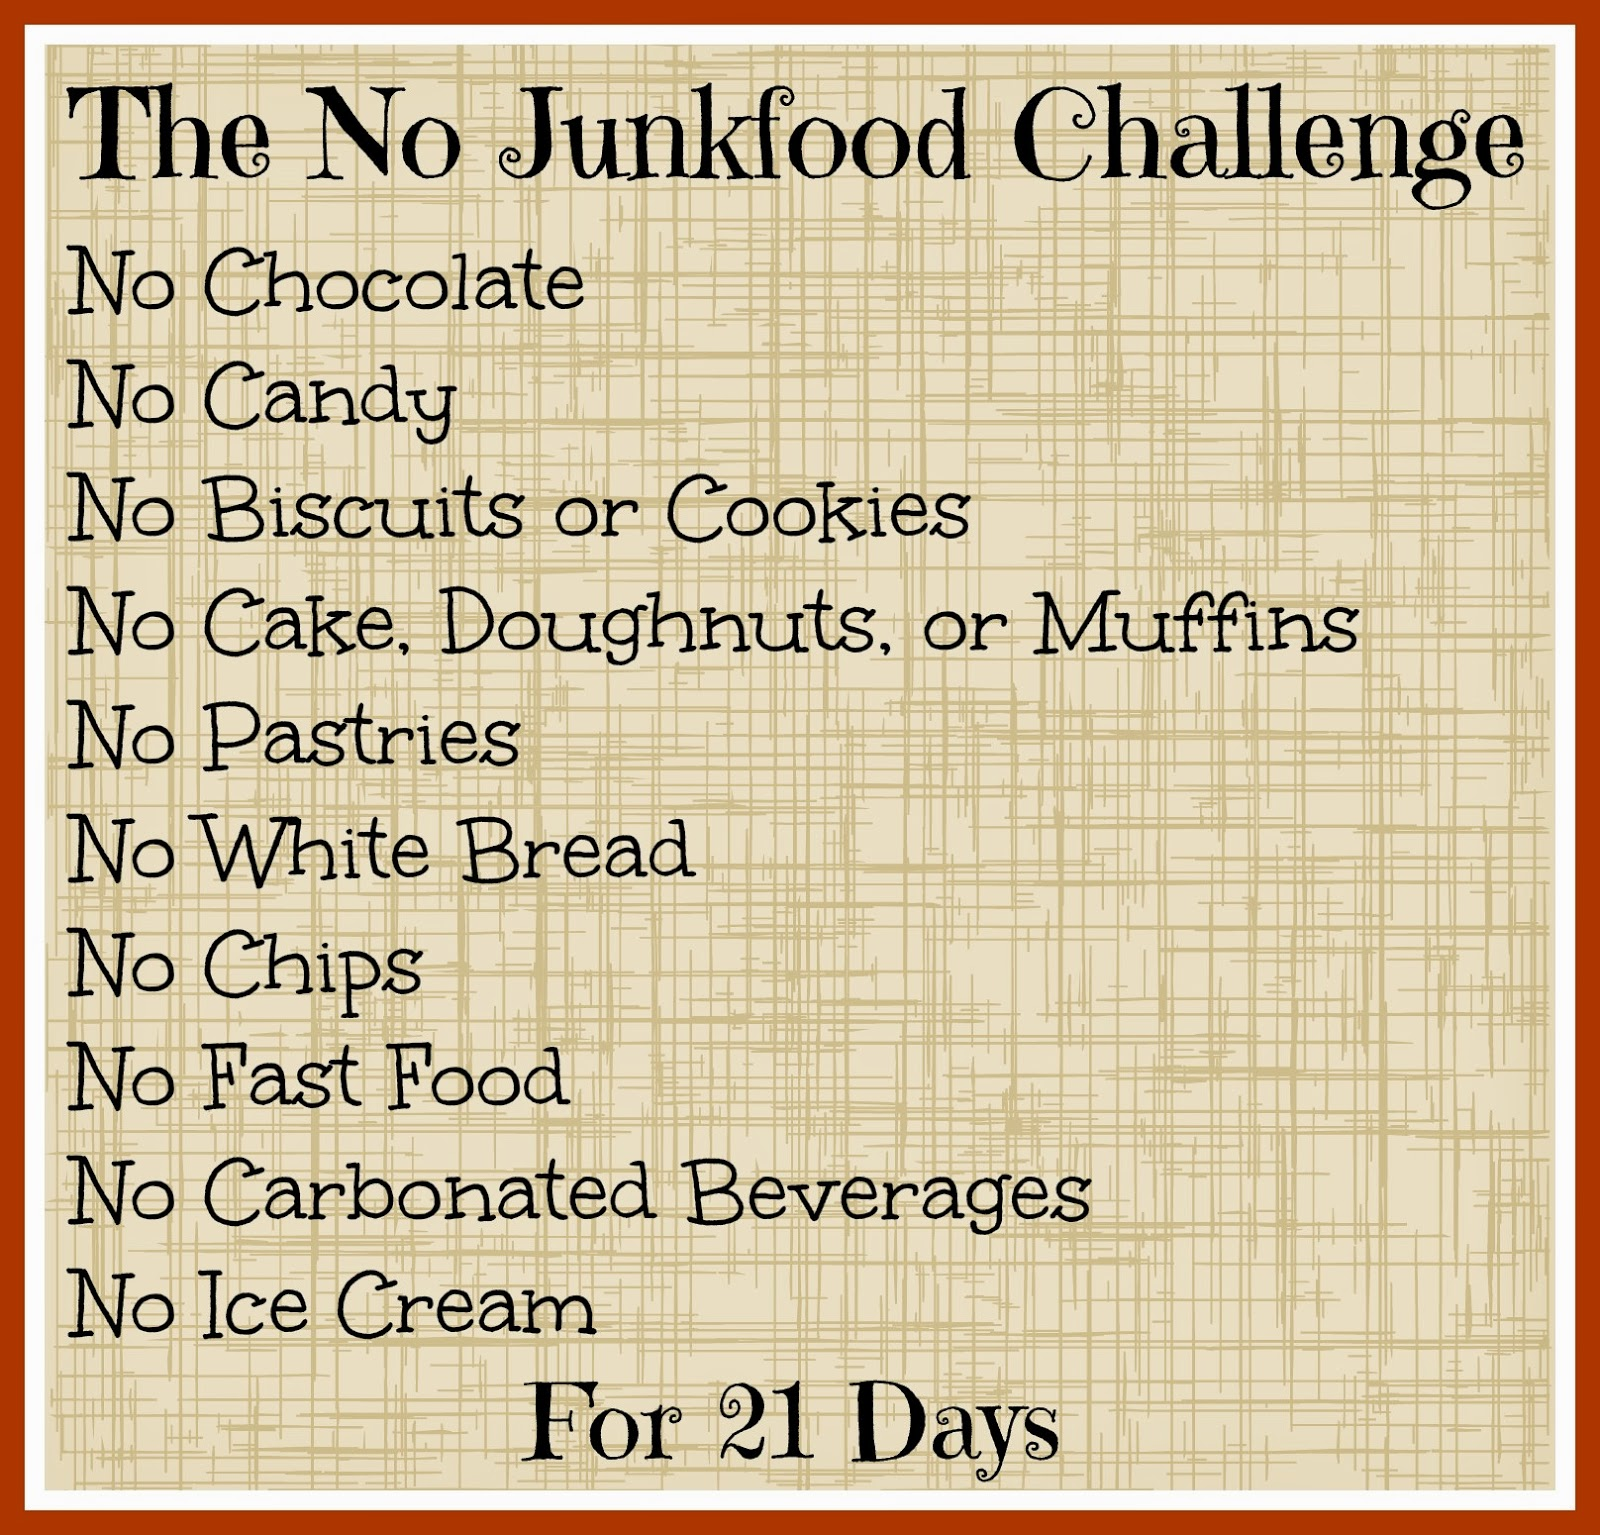 Weight Loss Tips For Teens: How To Be Awesome At Everything: The No Junk Food Challenge